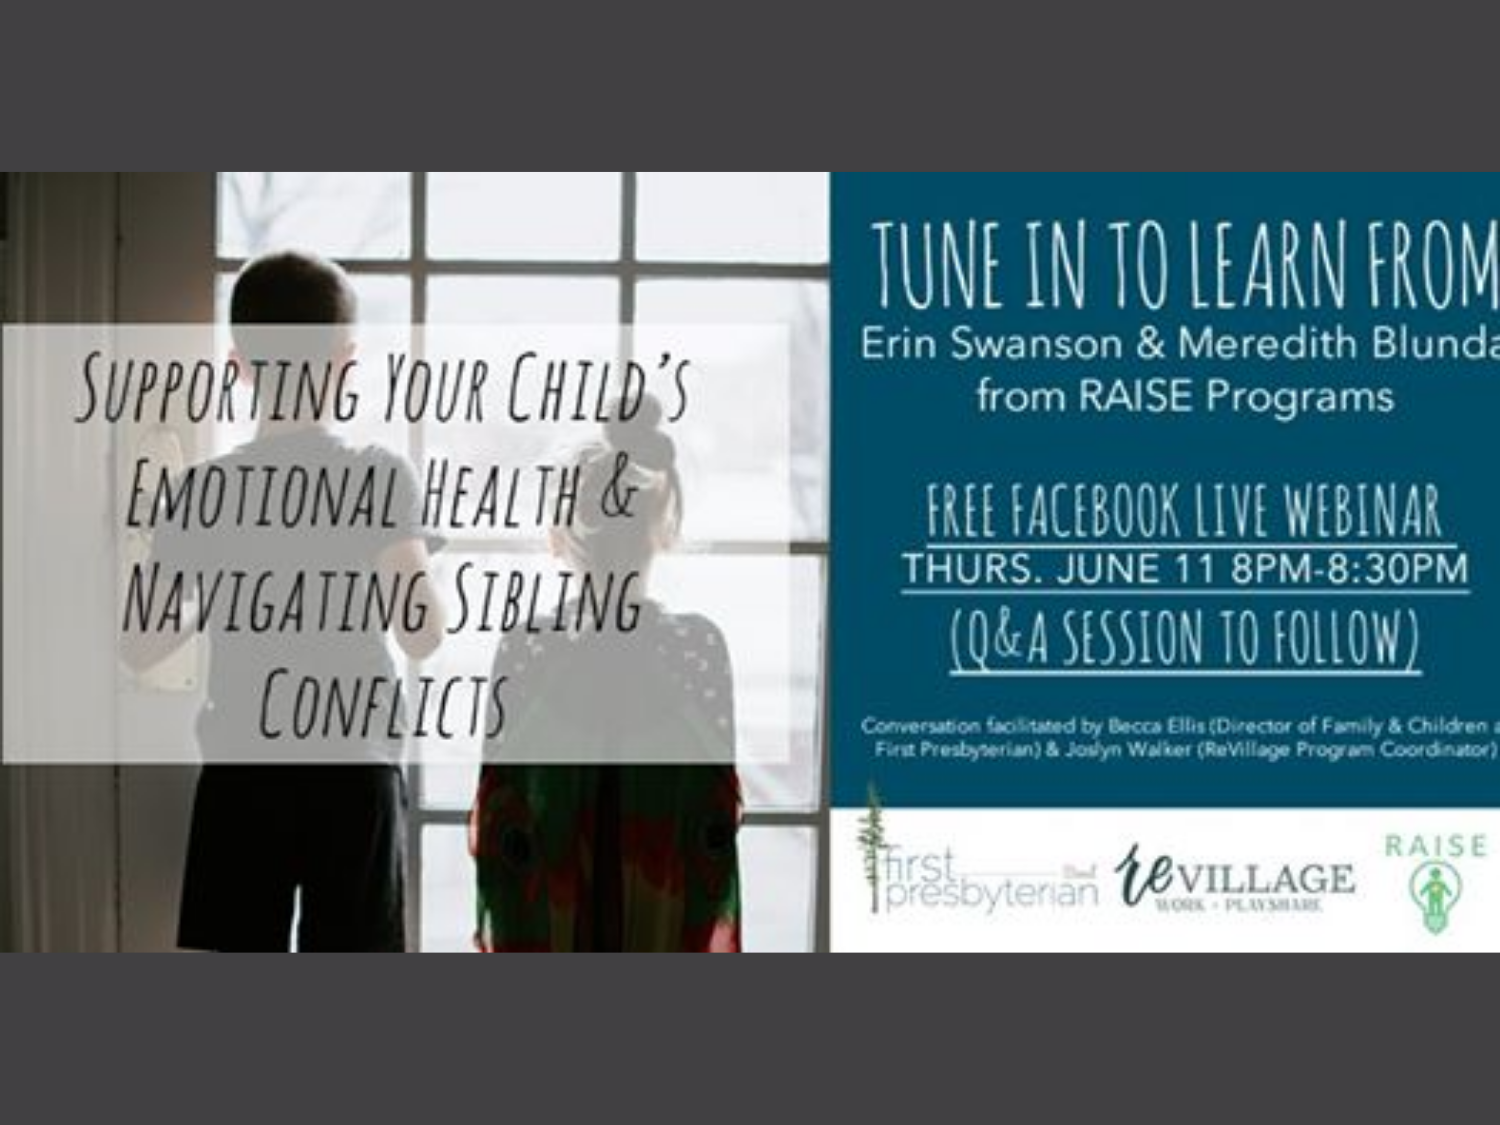 Supporting Emotional Health & Navigating Sibling Conflict